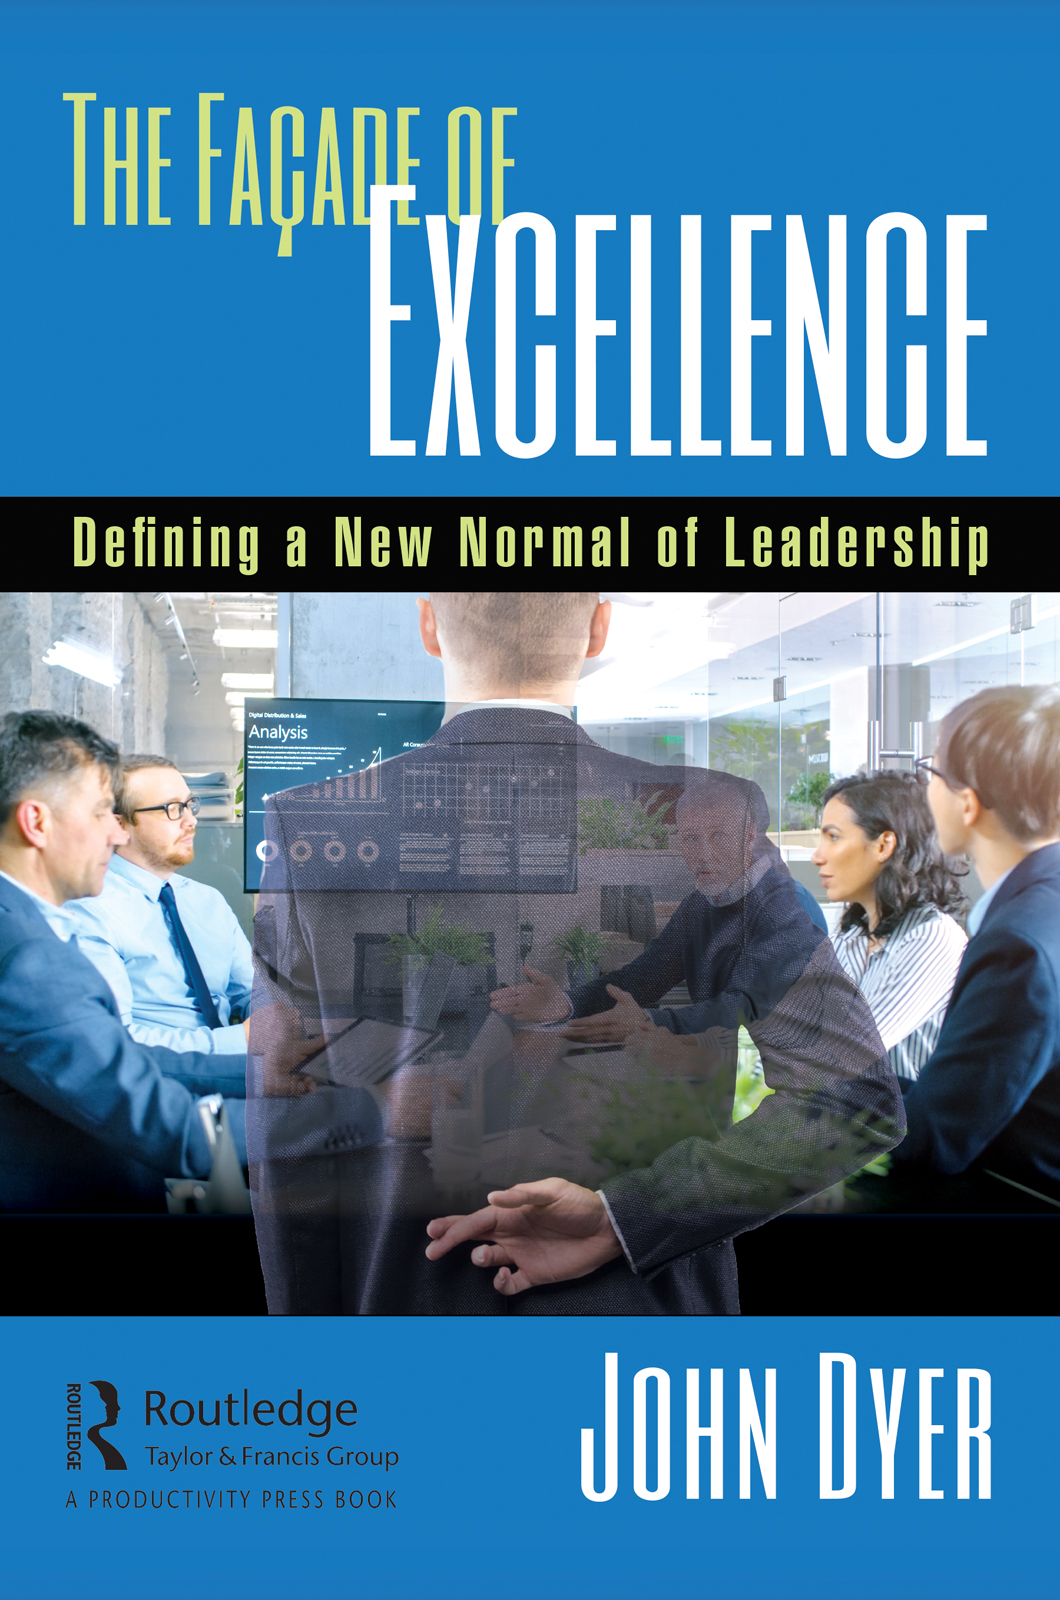 The Façade of Excellence: Defining a New Normal of Leadership book cover